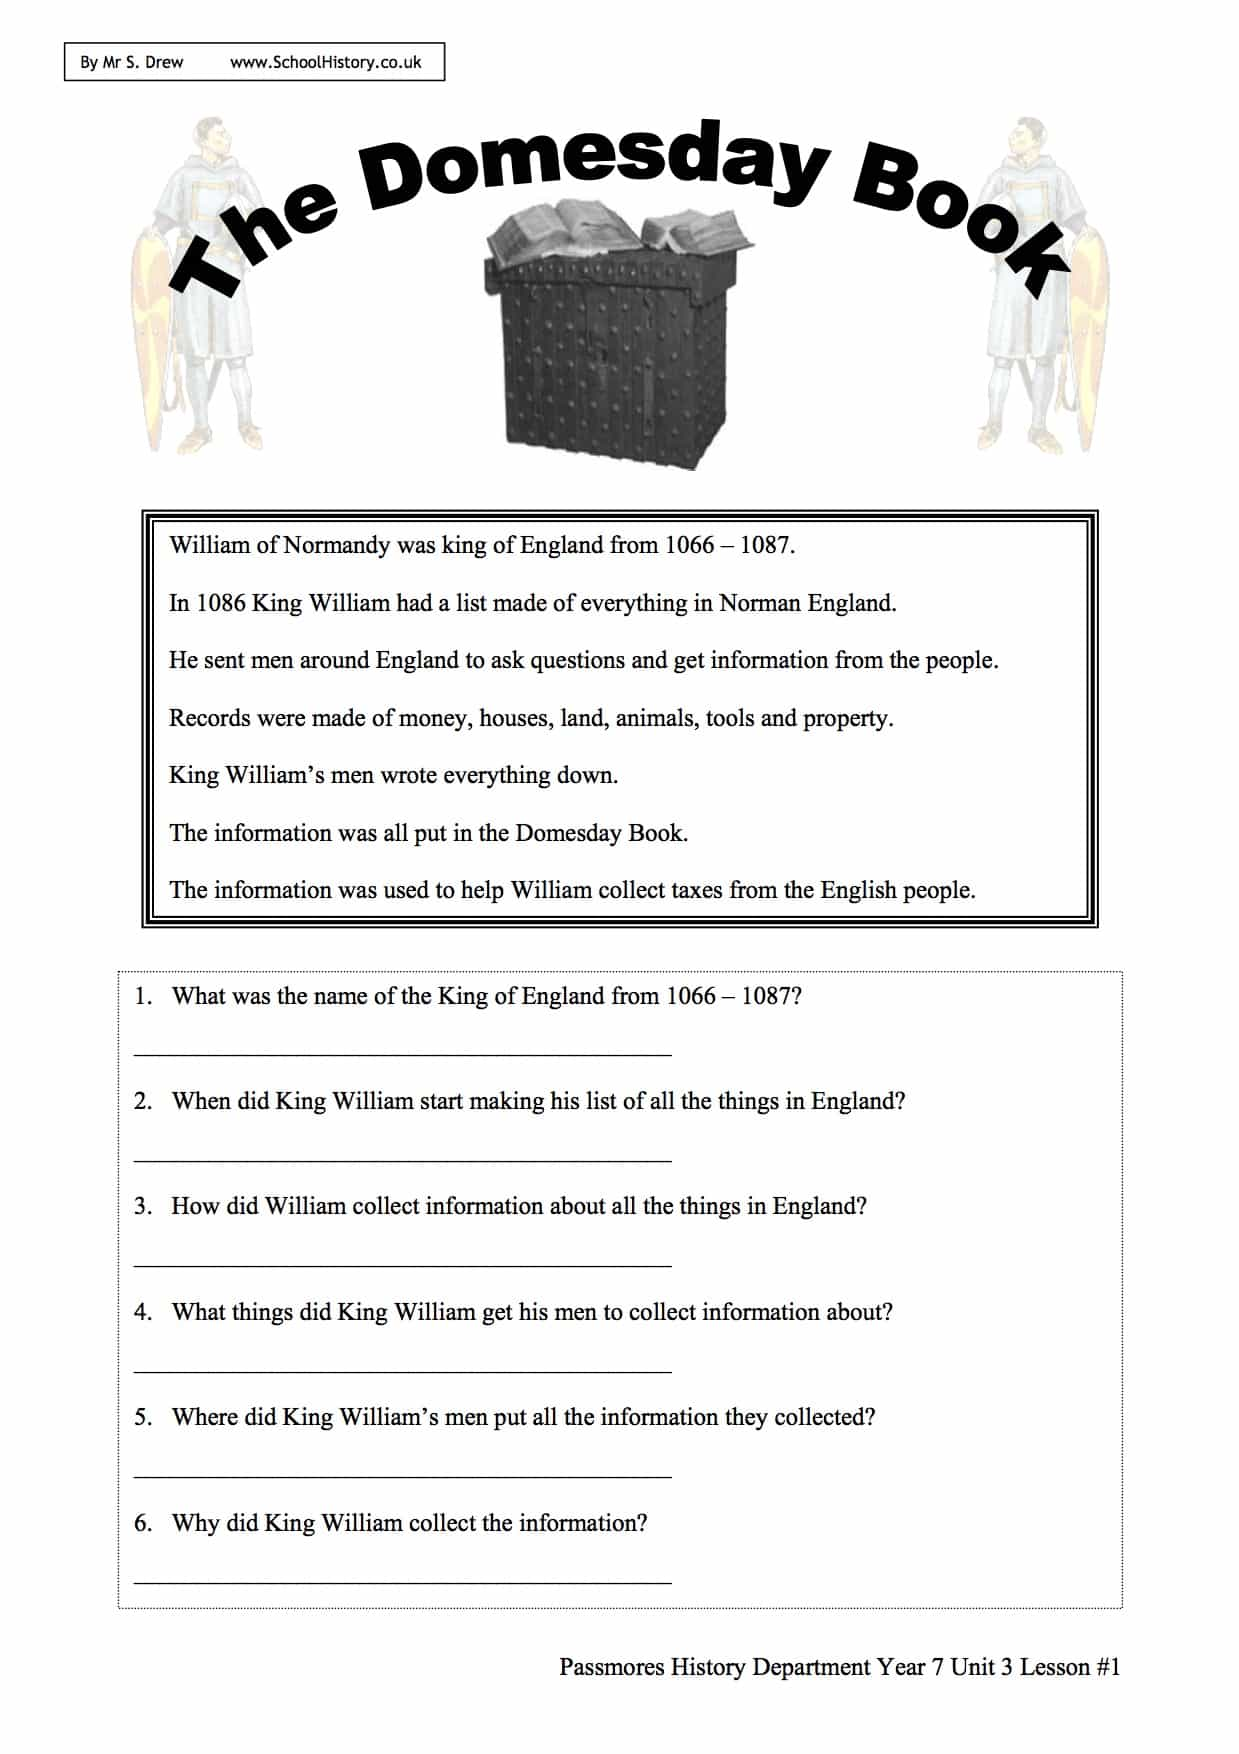 Renaissance Worksheet Middle School Renaissance Best Free Printable Worksheets